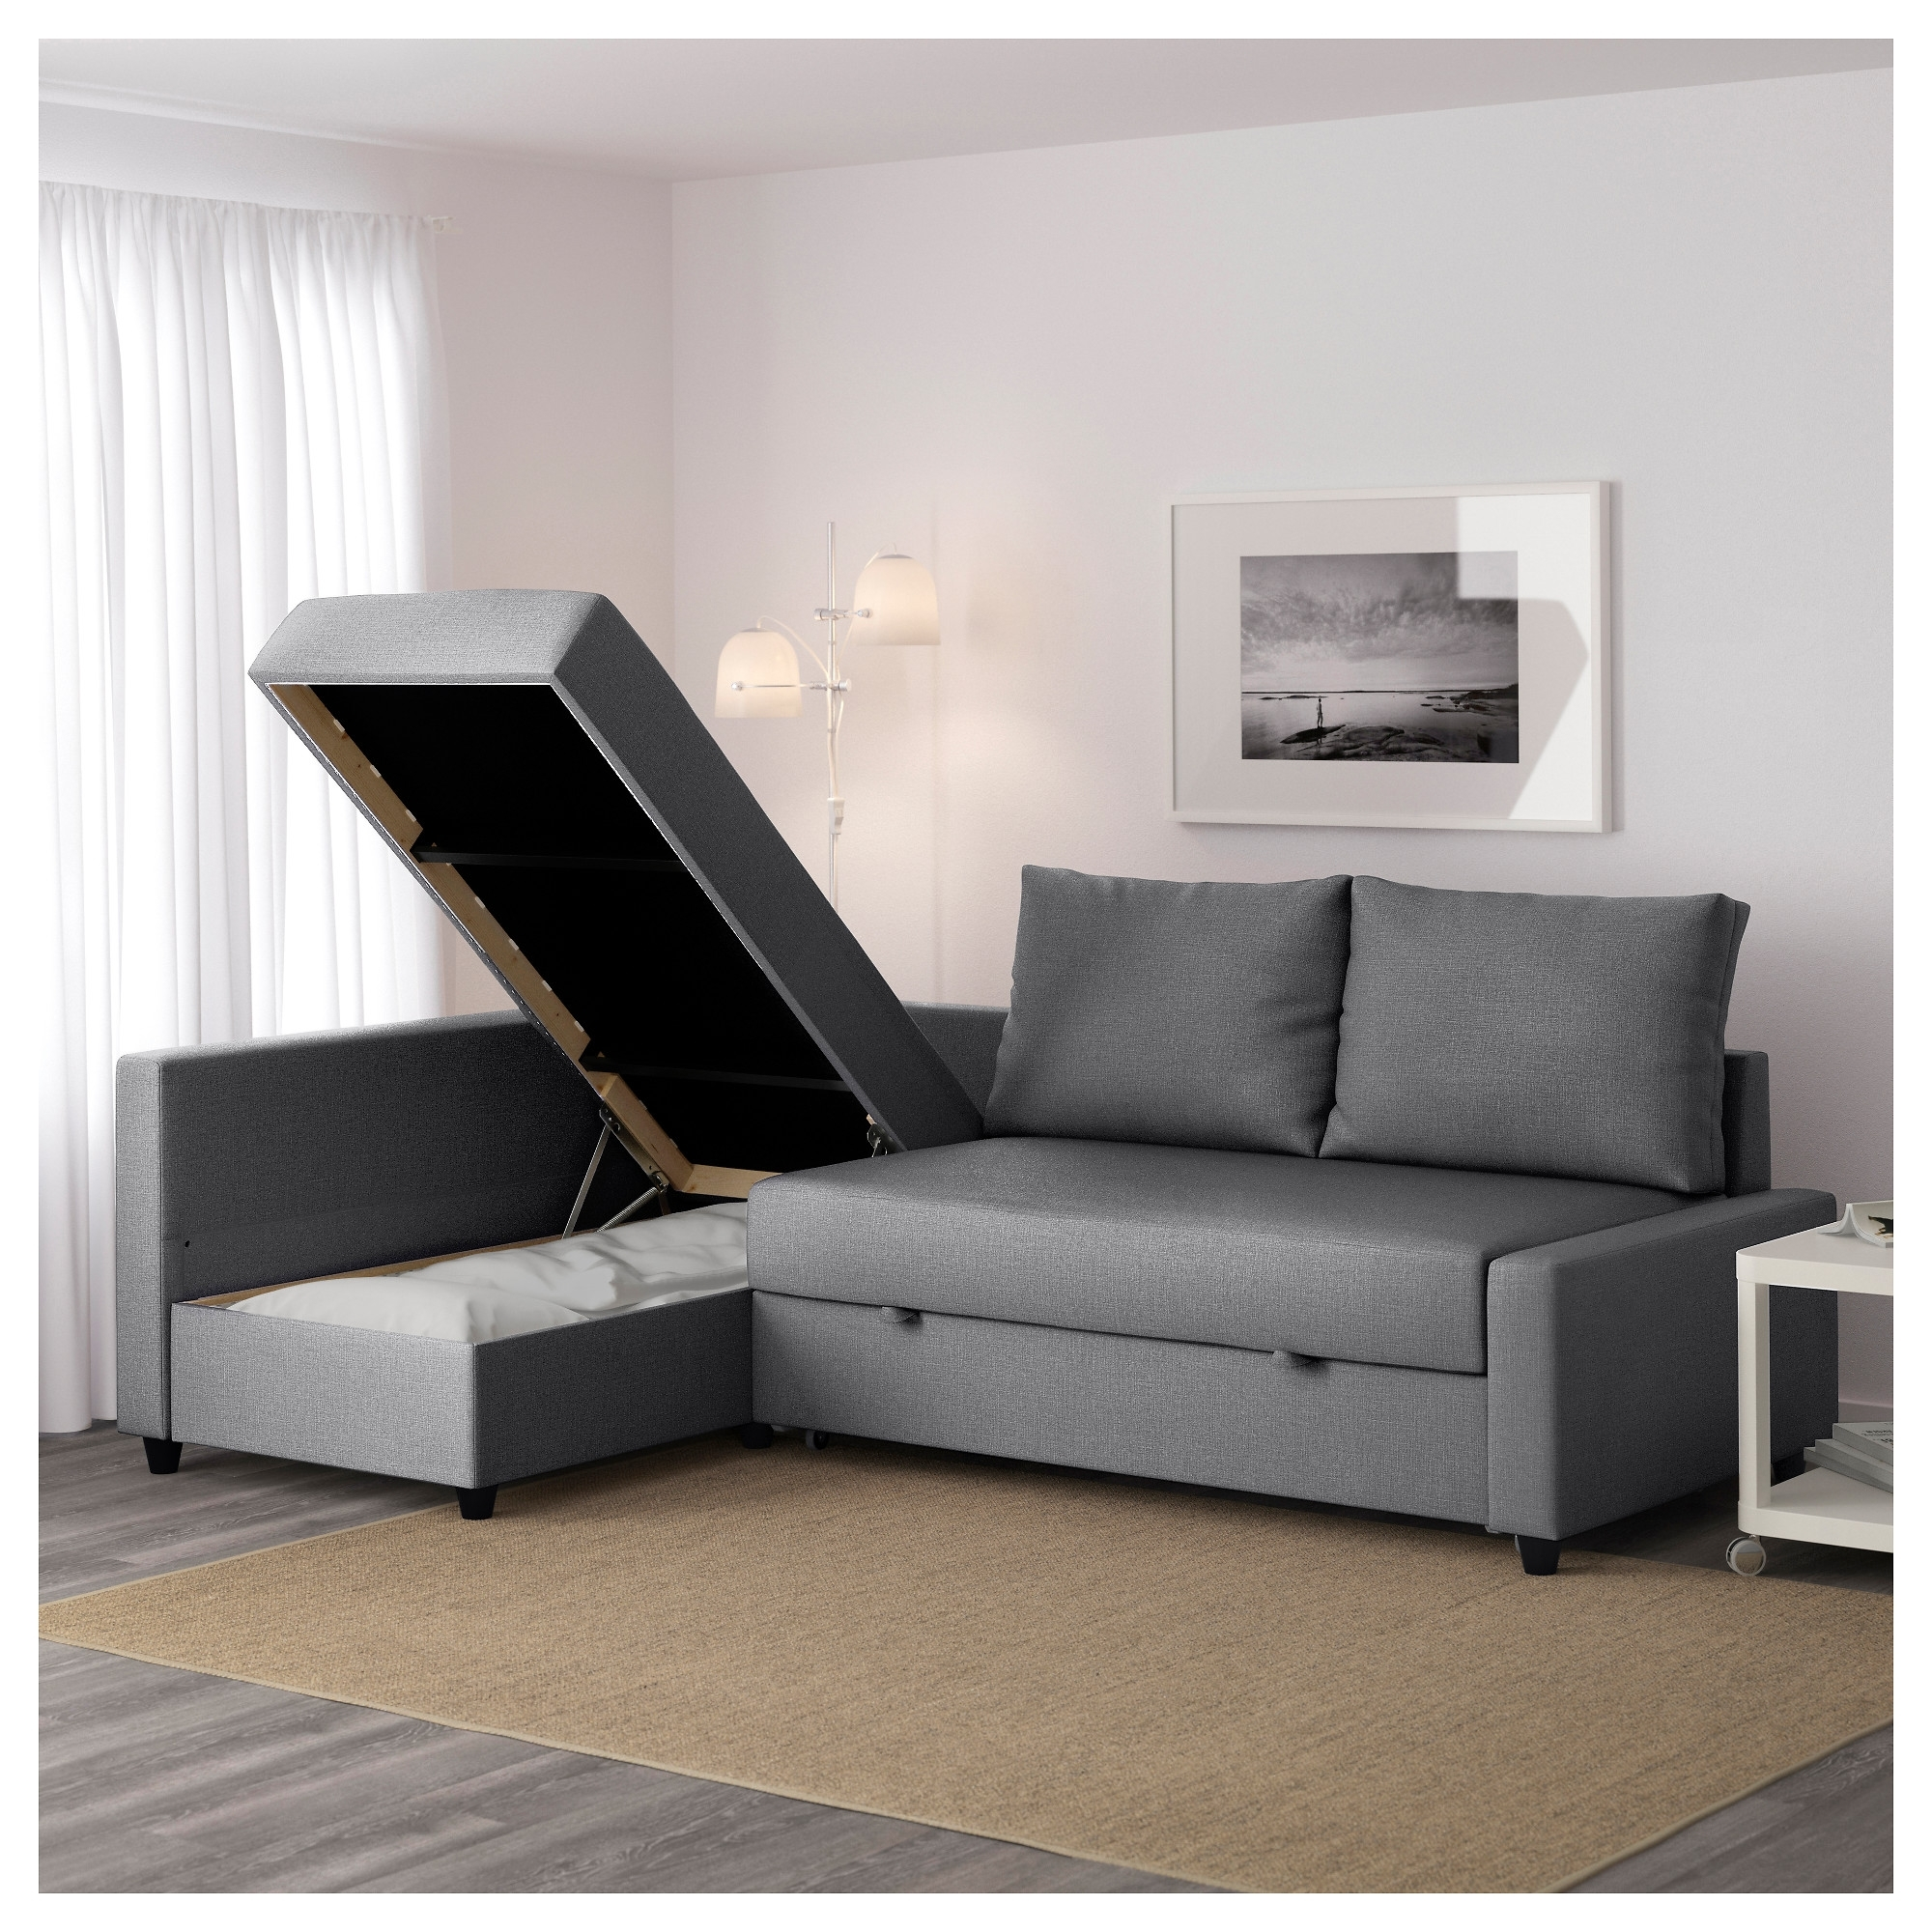 Friheten Corner Sofa Bed With Storage – Skiftebo Dark Gray – Ikea Inside Ikea Sectional Sofa Beds (View 2 of 10)